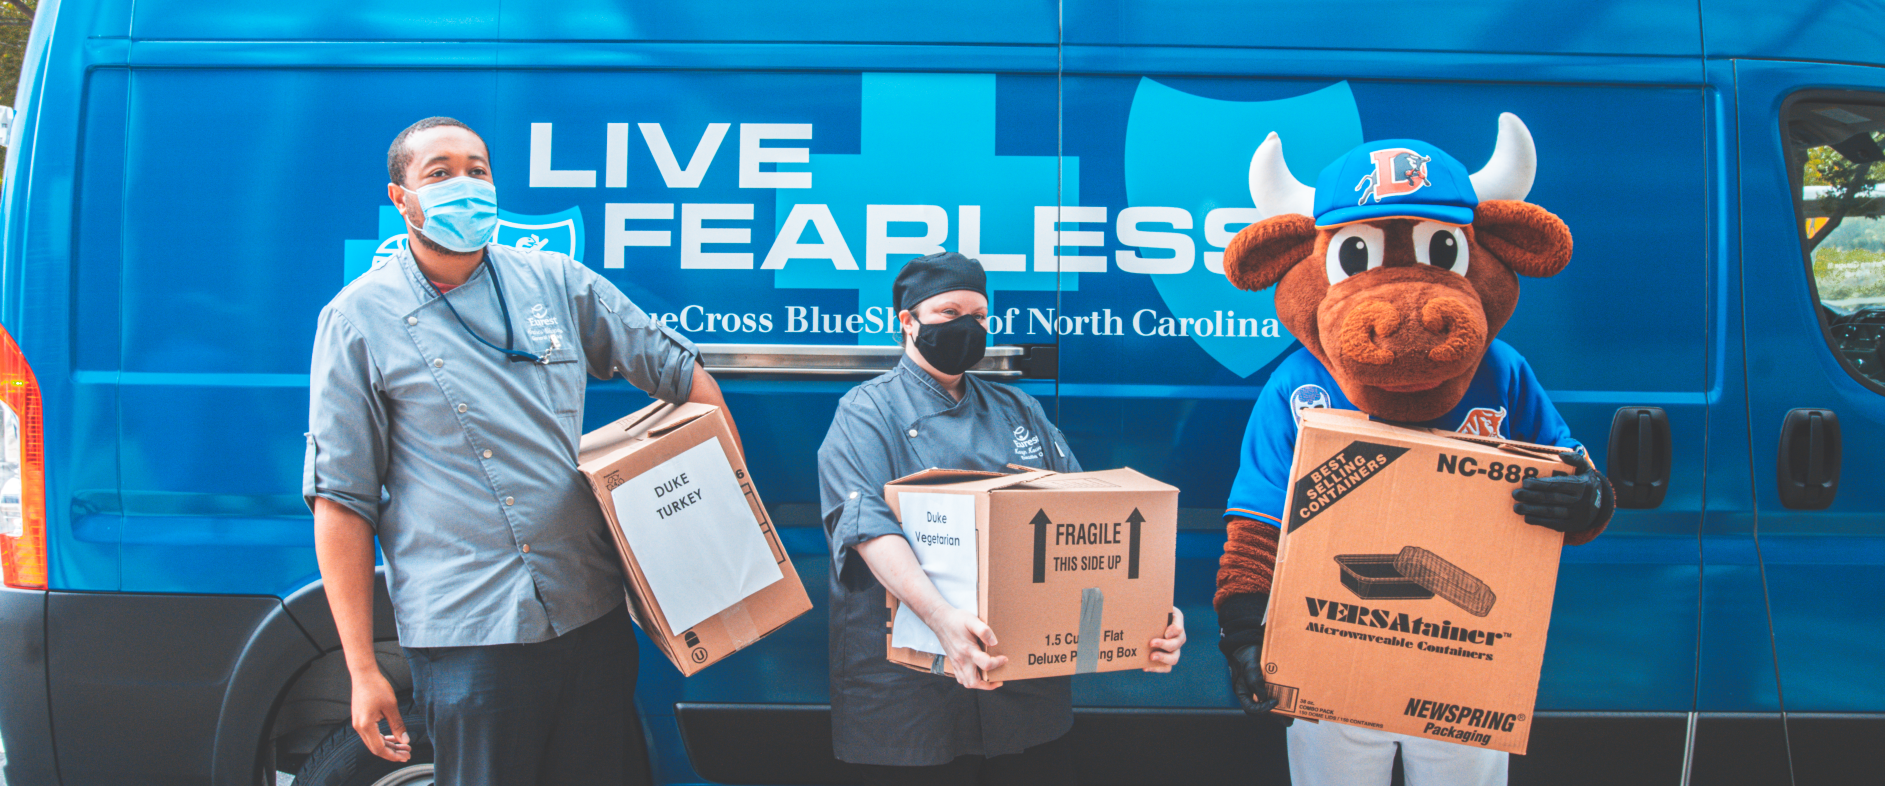 Durham Bulls mascot and volunteers carry boxes full of meals